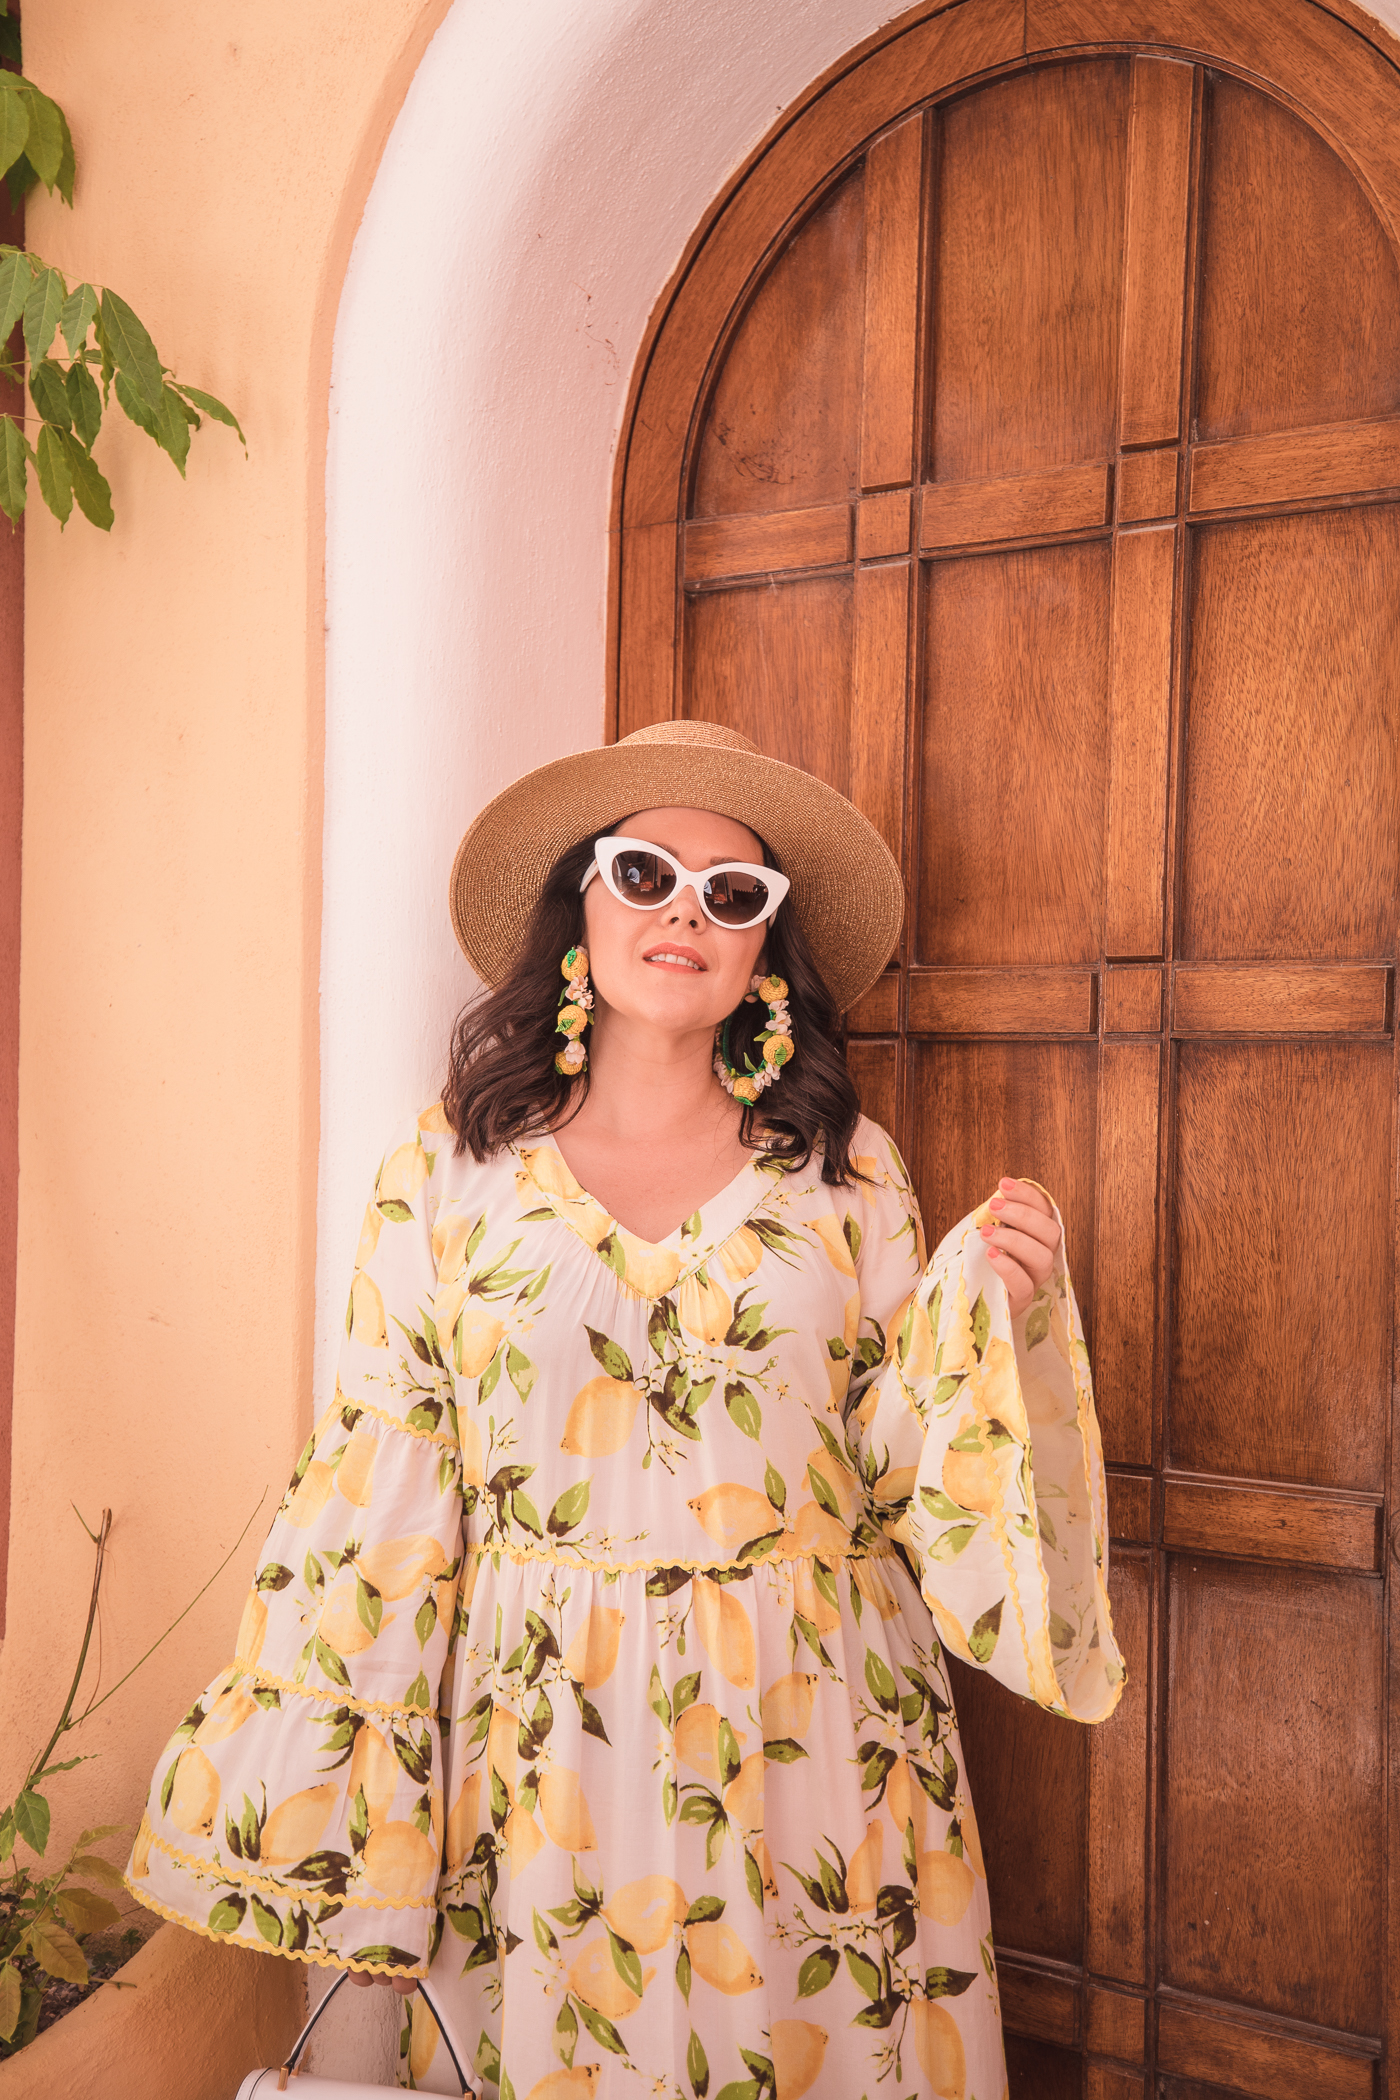 Lemon print dress in Positano